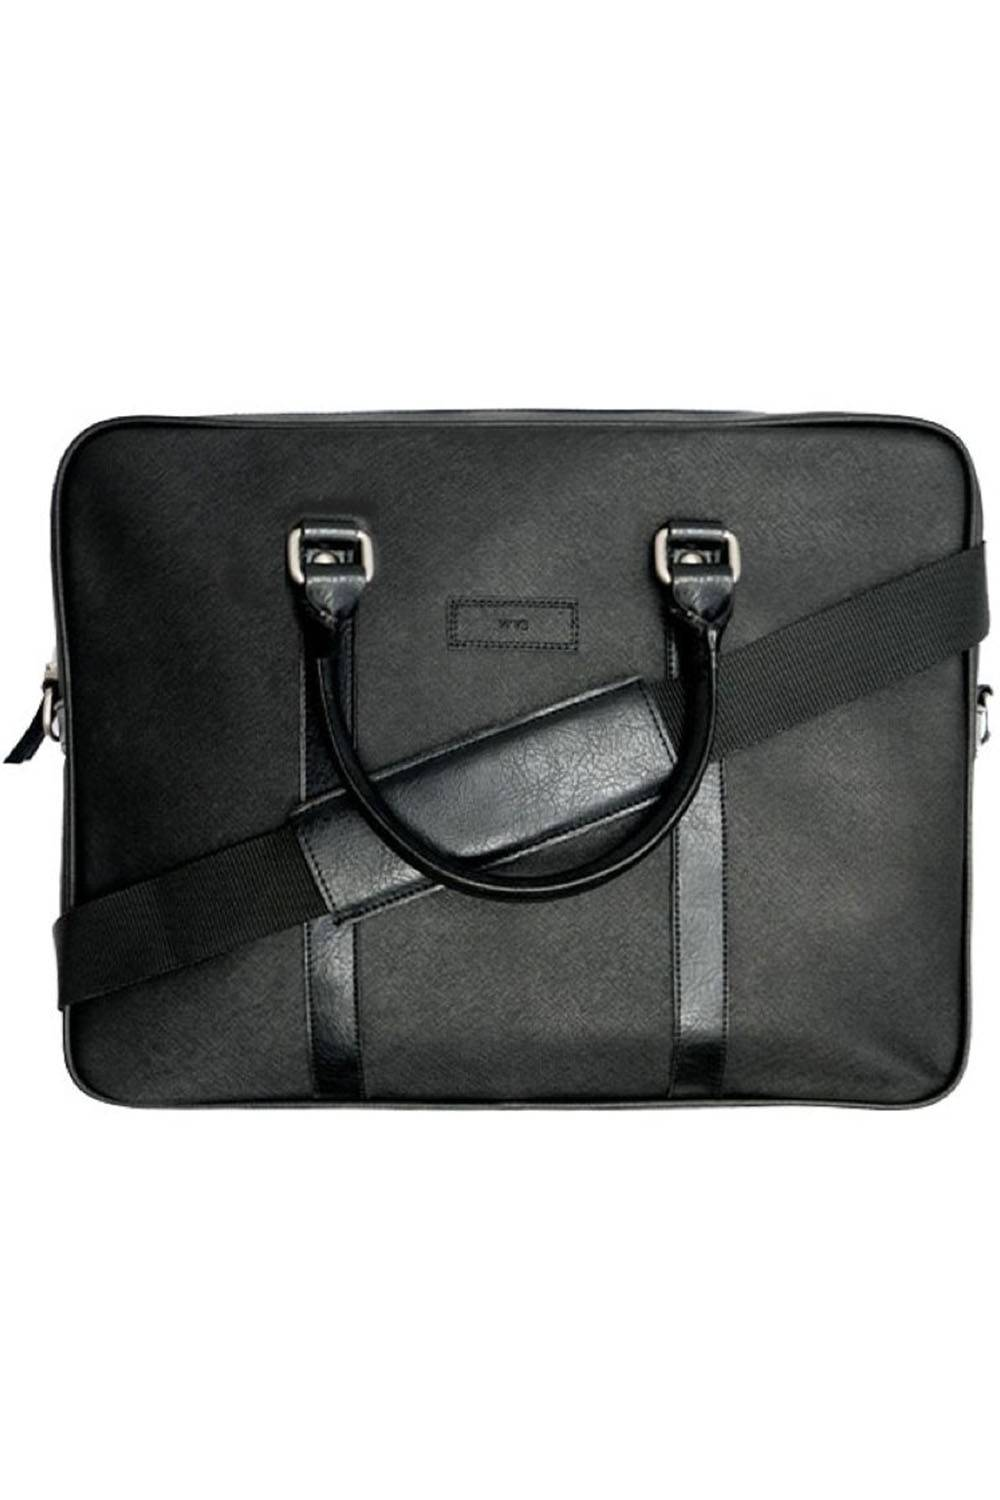 wills vegan store leather cheap bags